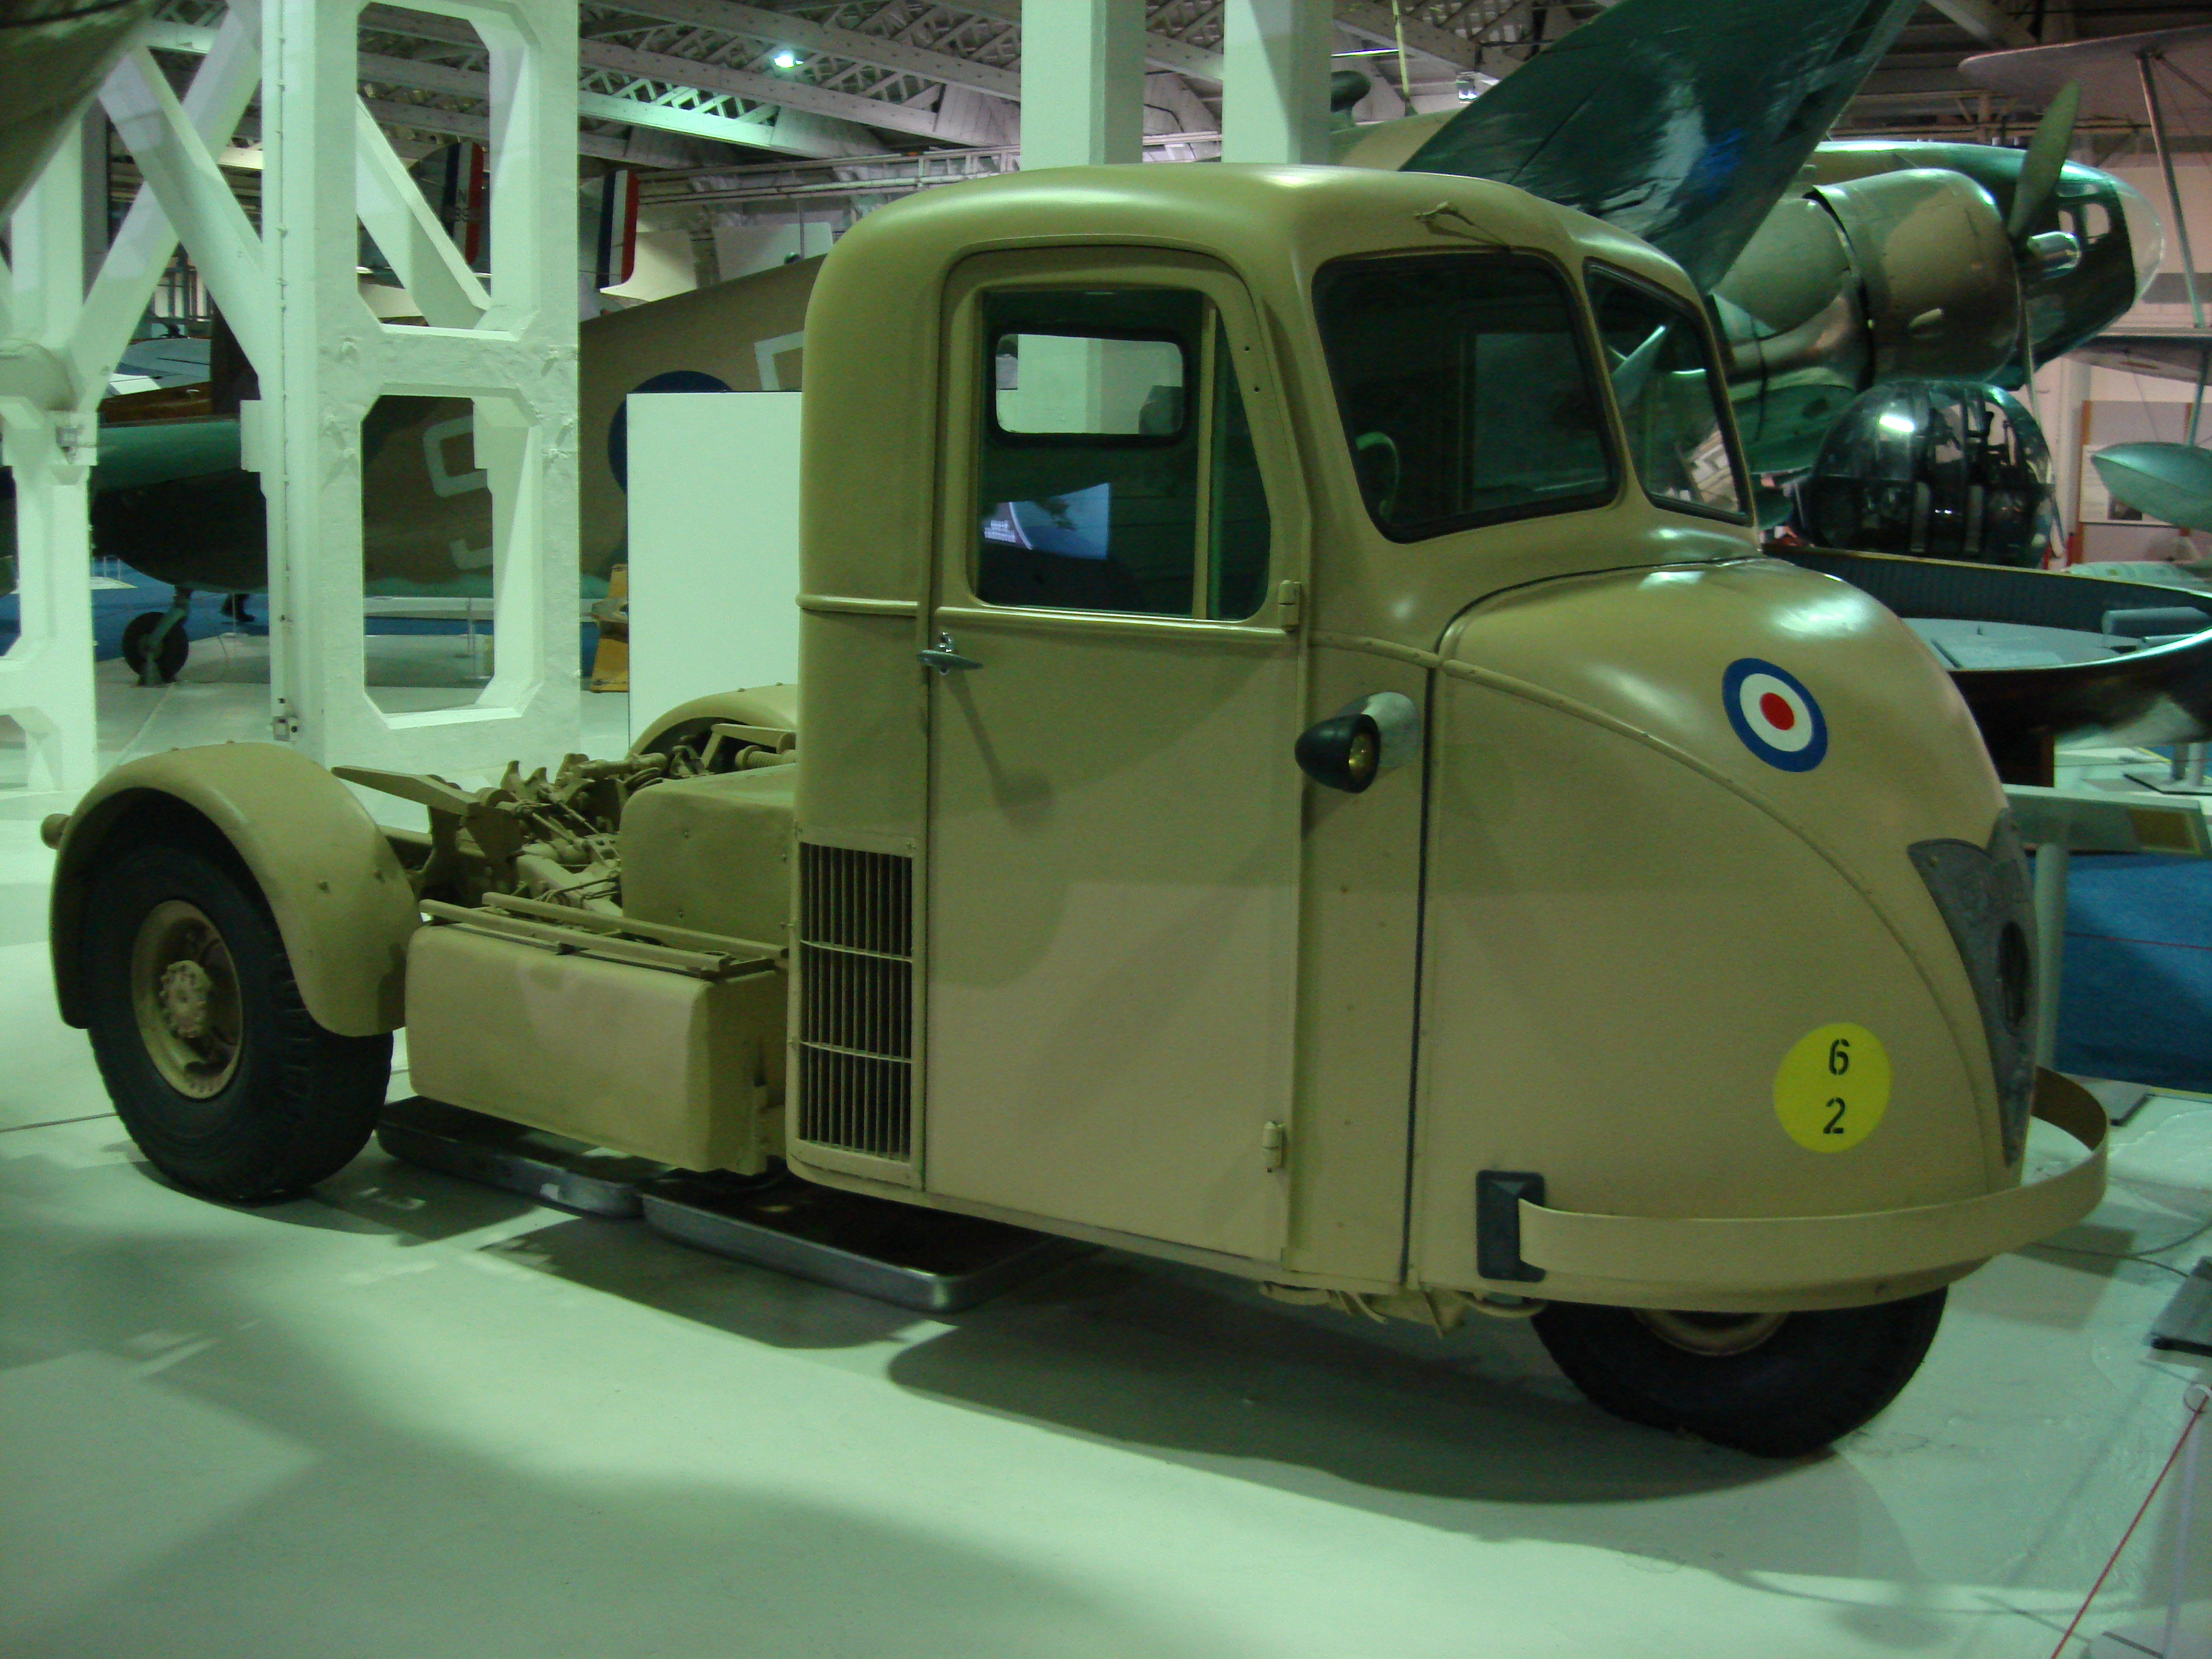 Scammell scarab photo - 2